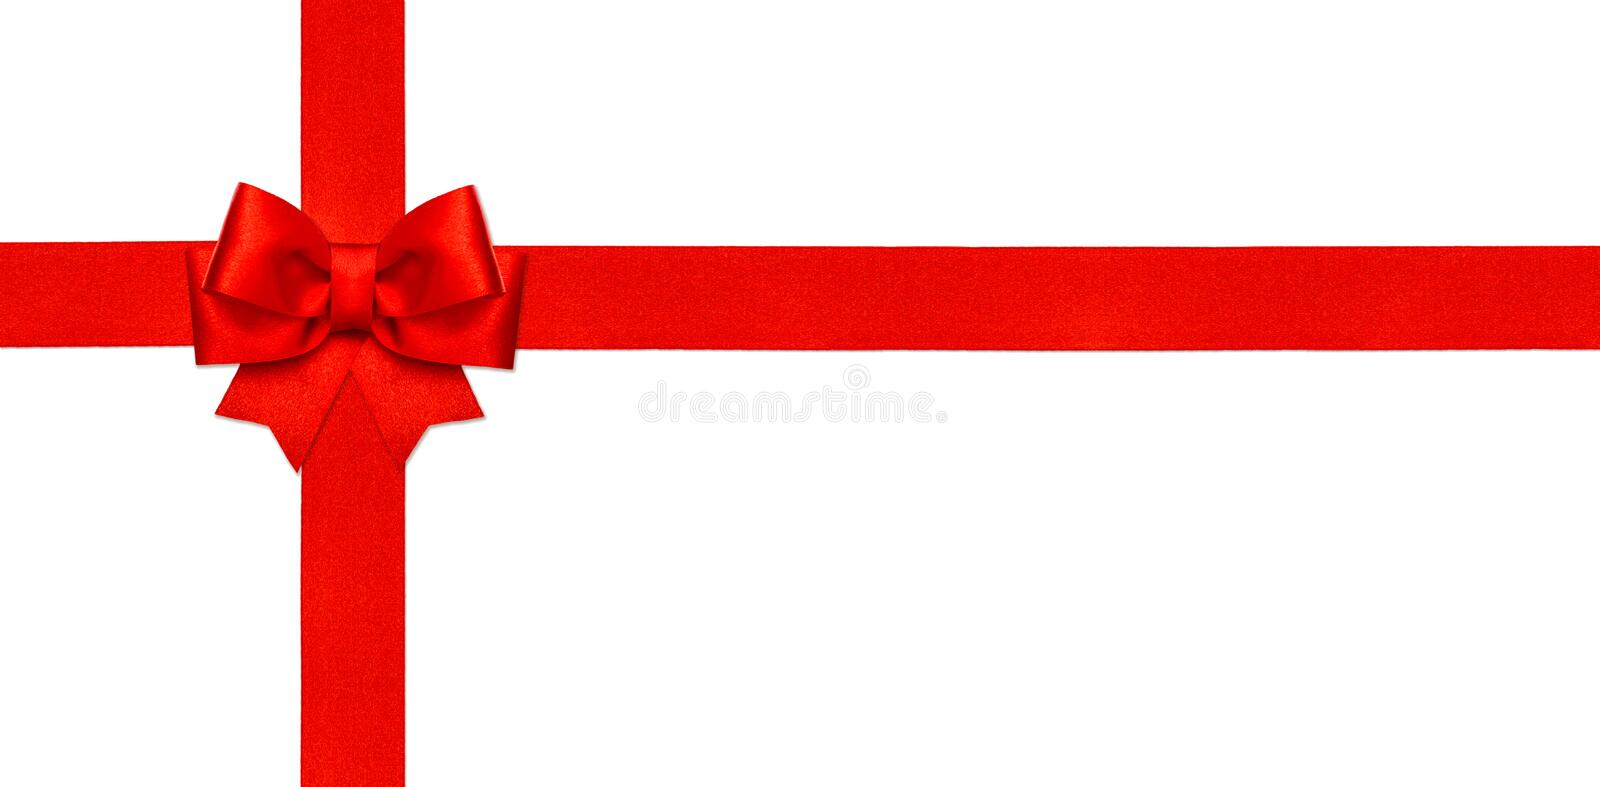 432 007 Red Ribbon Photos Free Royalty Free Stock Photos From Dreamstime